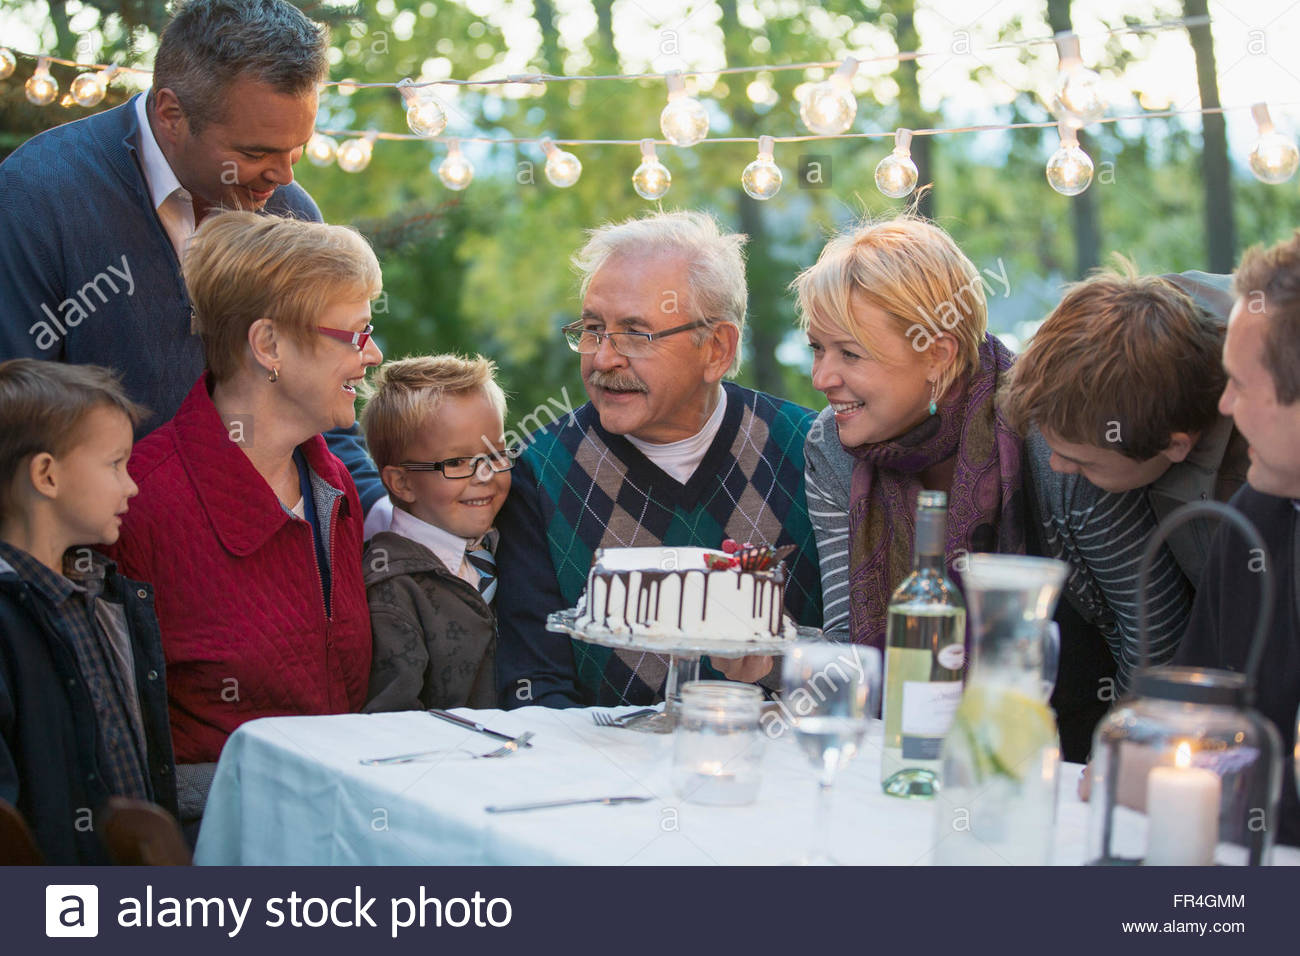 Family gathered around cake at outdoor dinner. - Stock Image